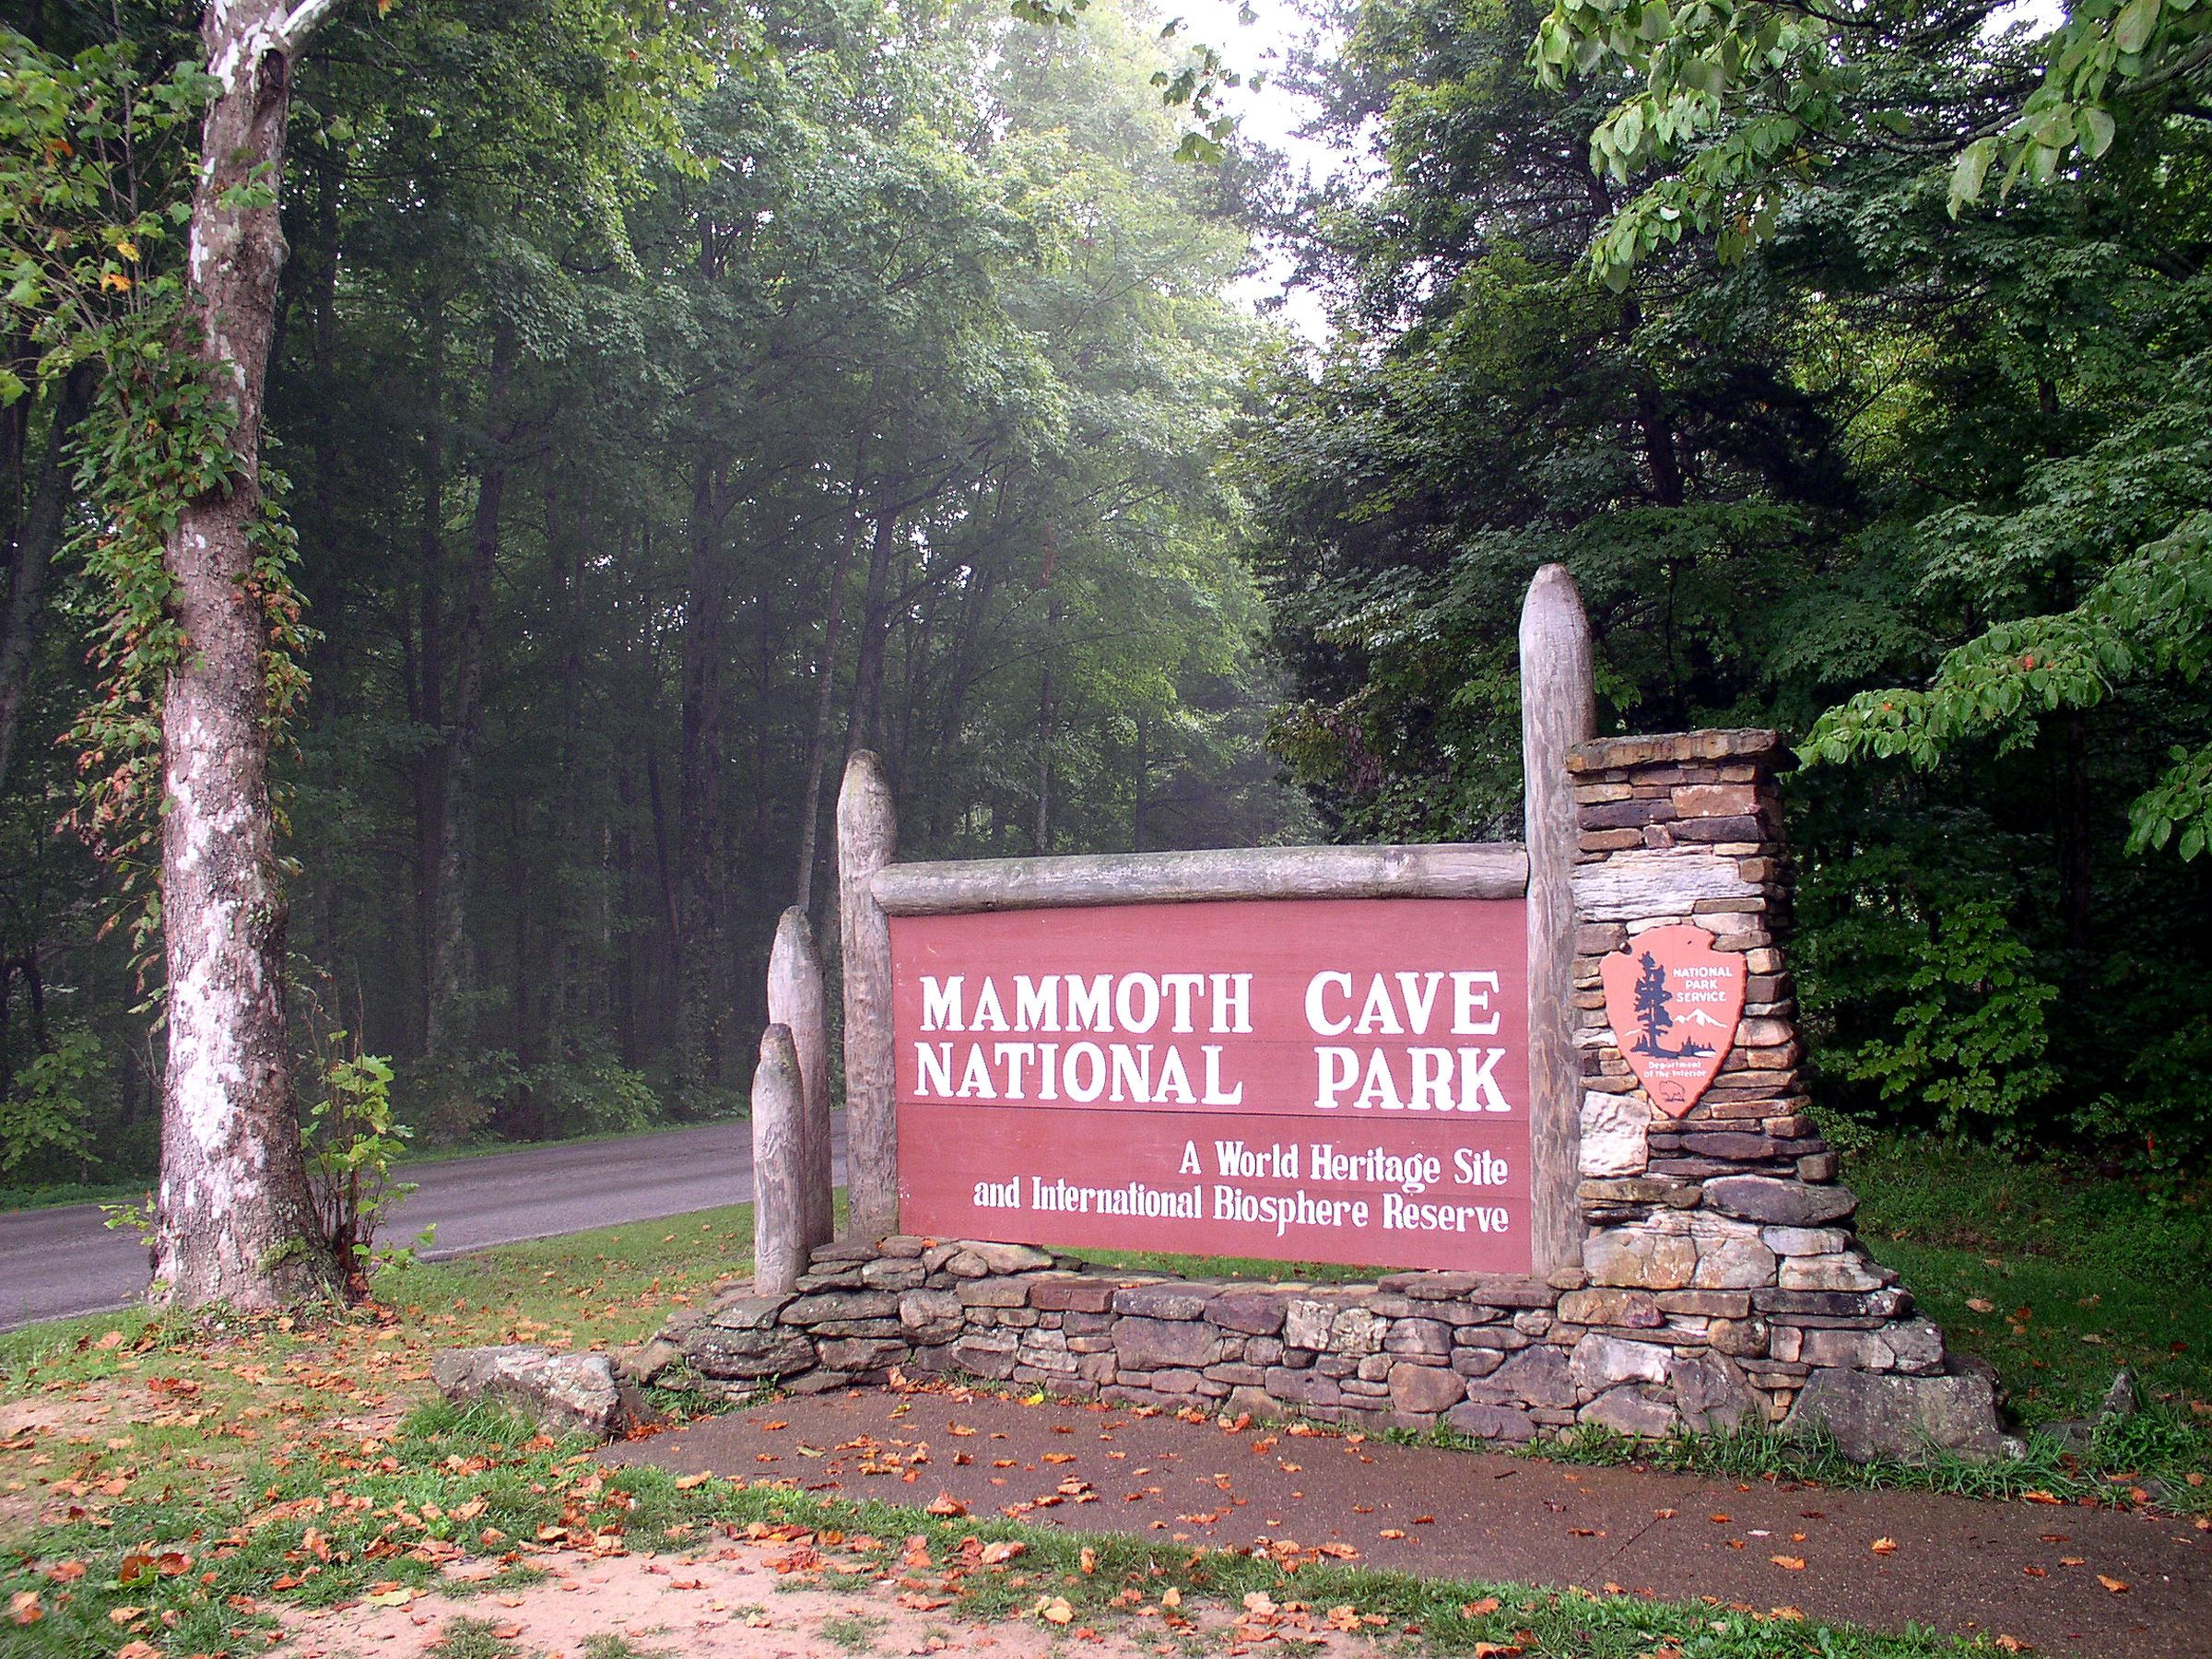 File:Mammoth Cave National Park PARKENTR.jpg